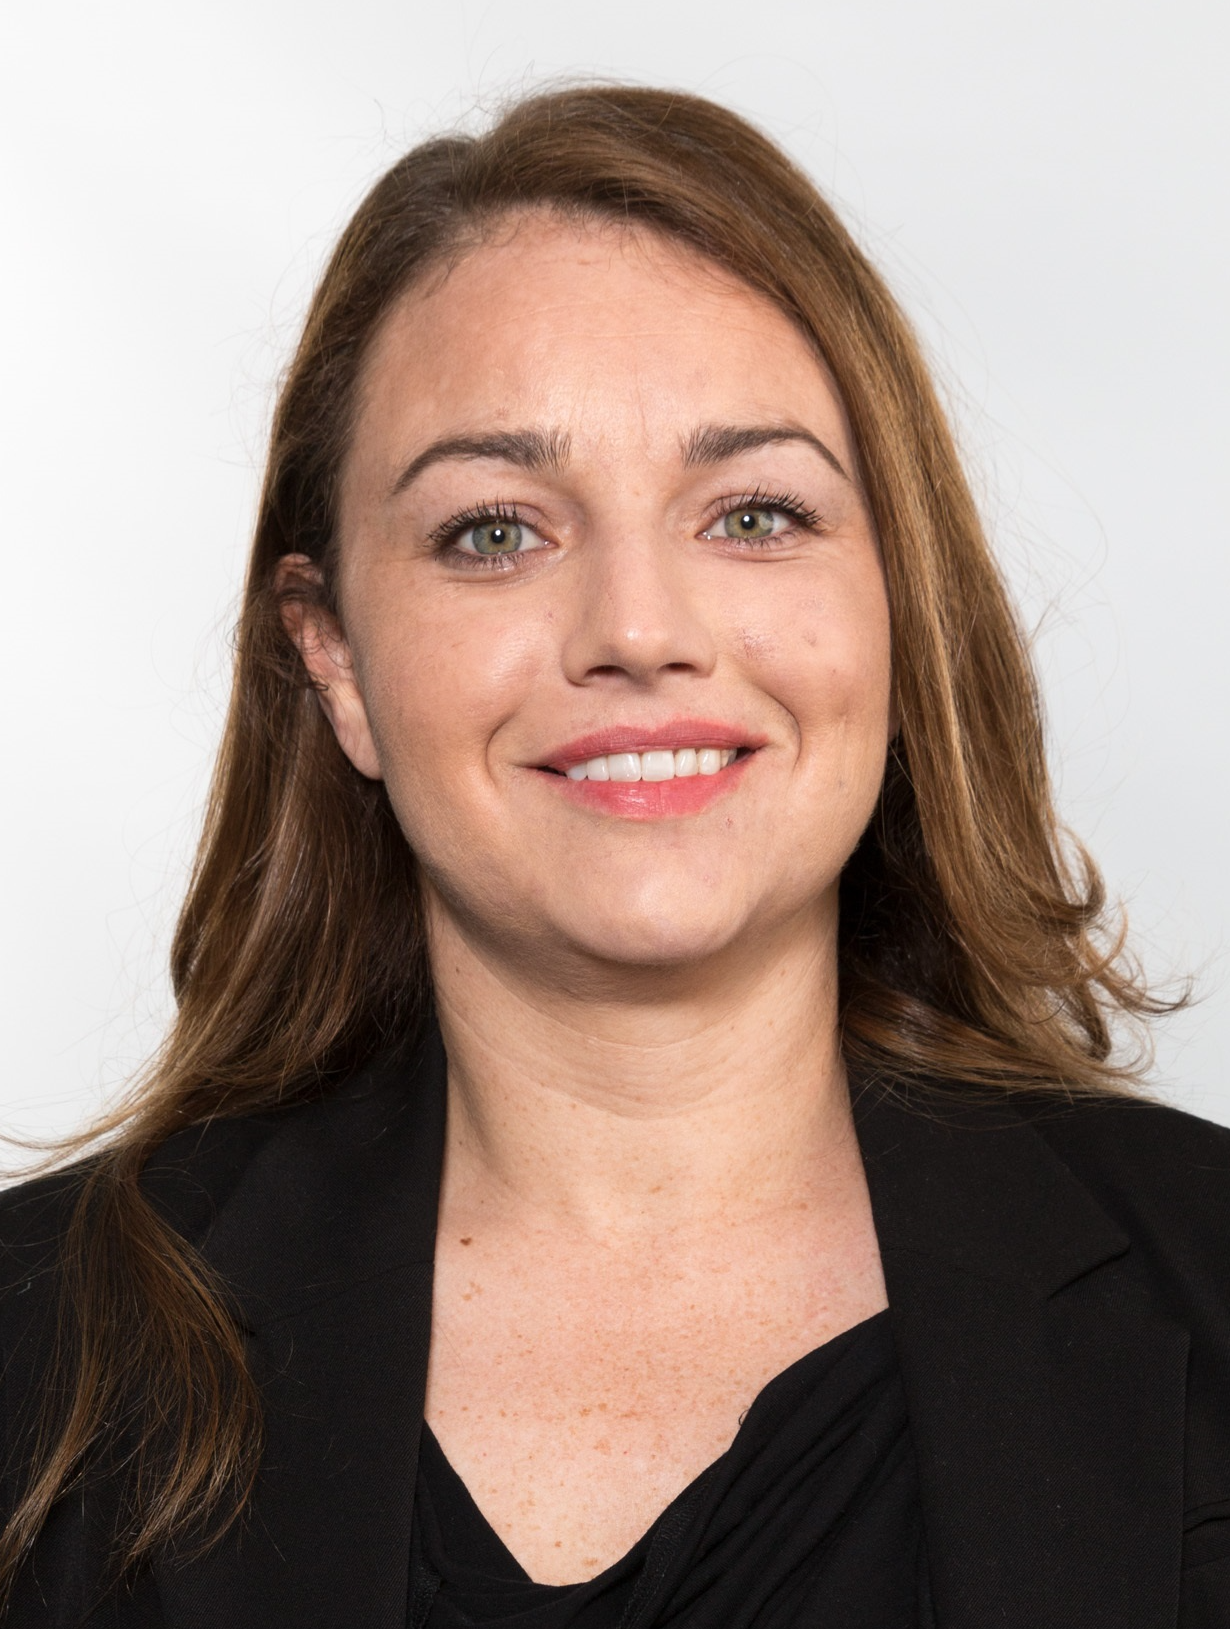 Maria Oldre, NP | Family Medicine with Obstetrics Nurse Practitioner